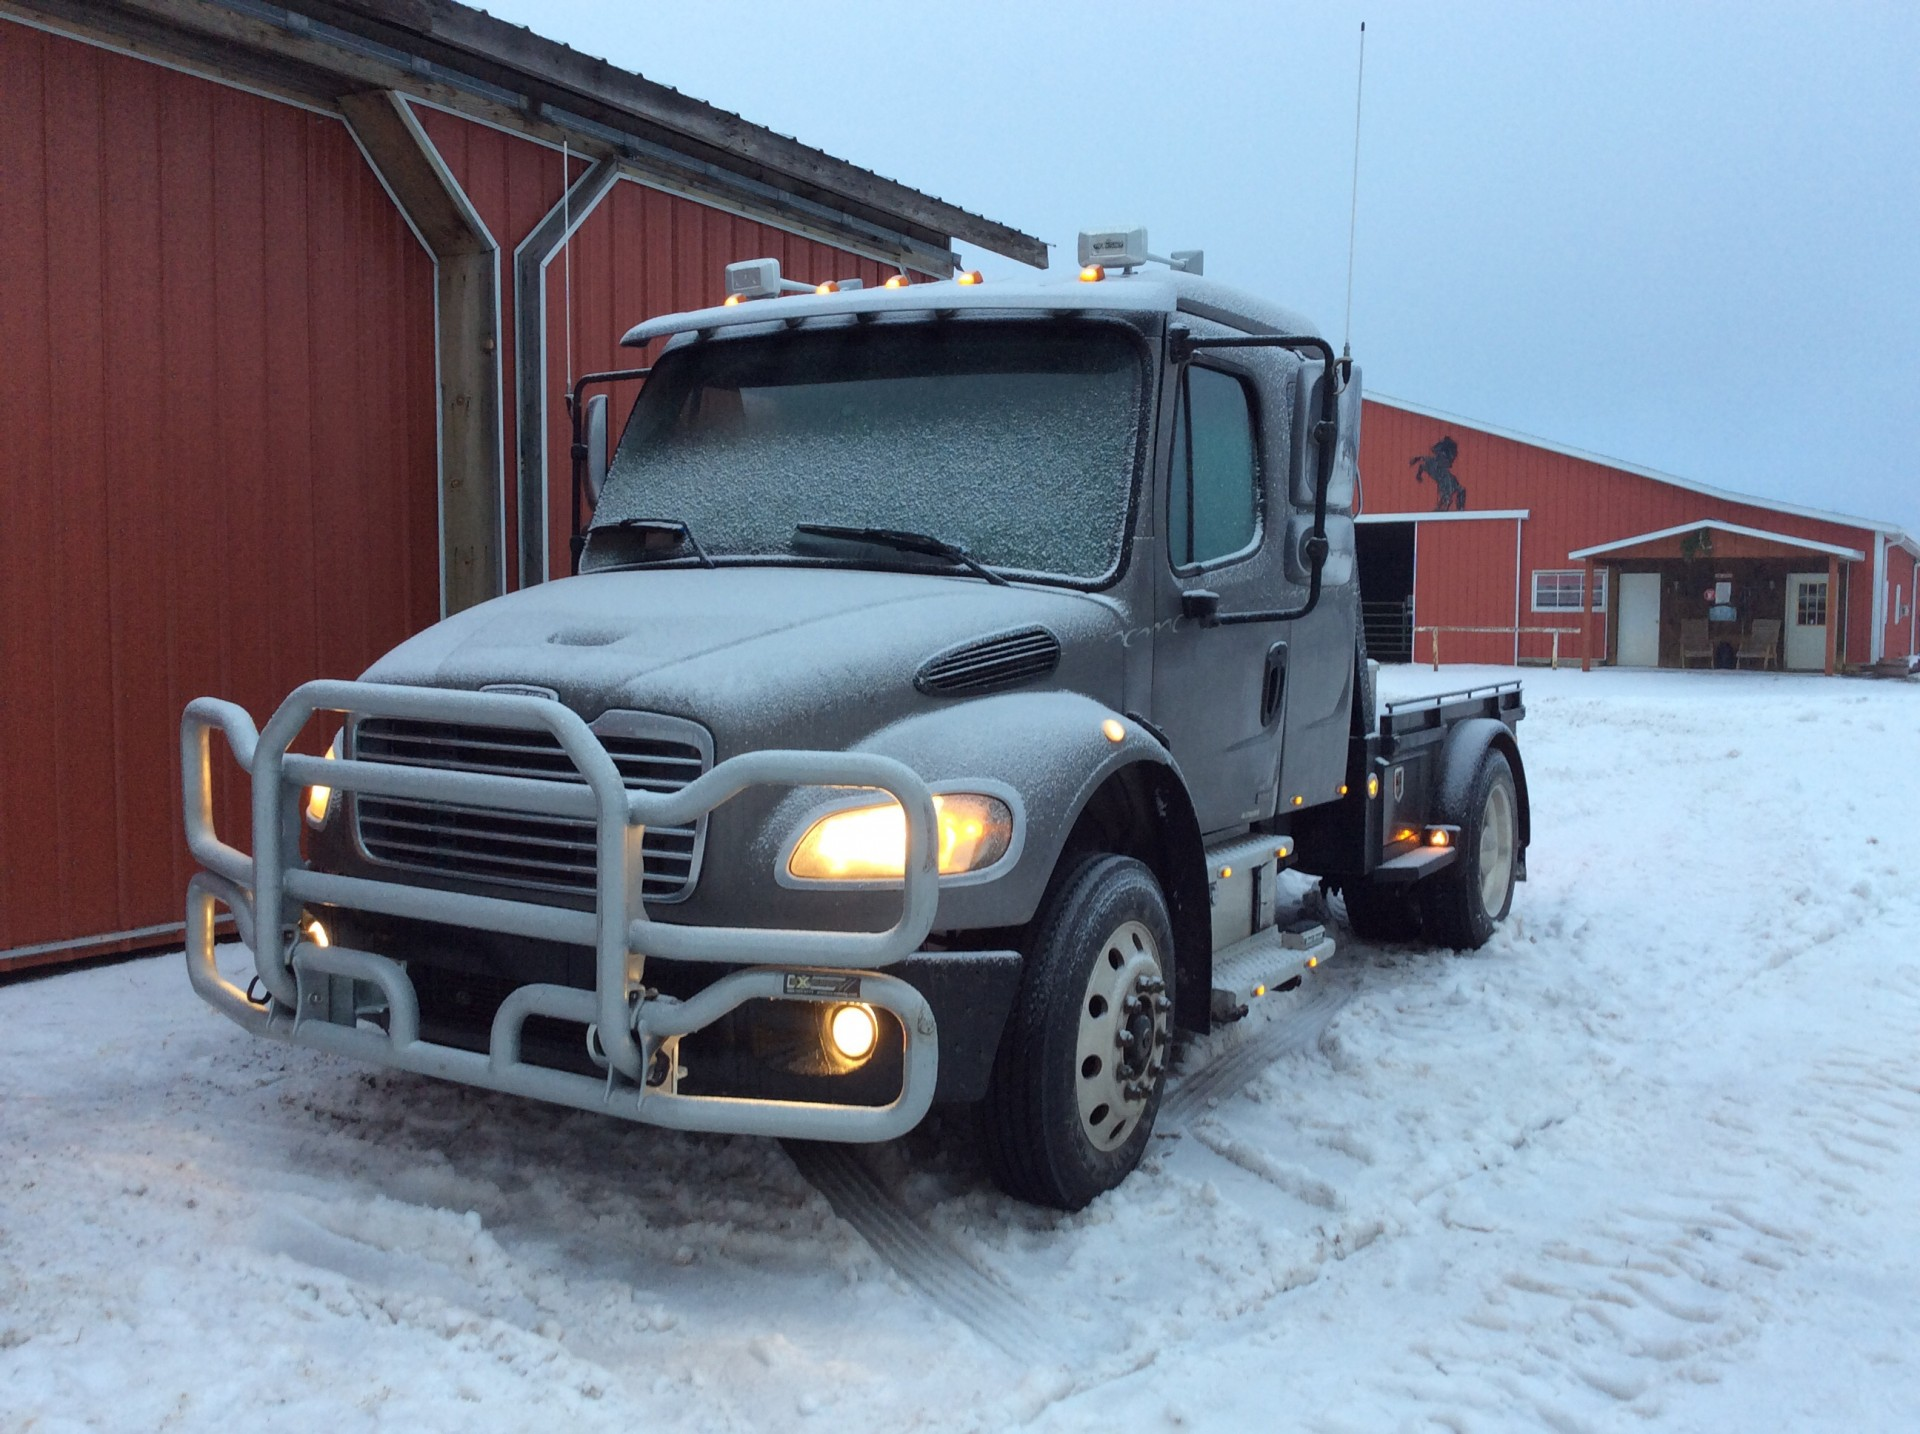 2004 Freightliner M2 Business Class, extended cab, sleeper, Cat, 10